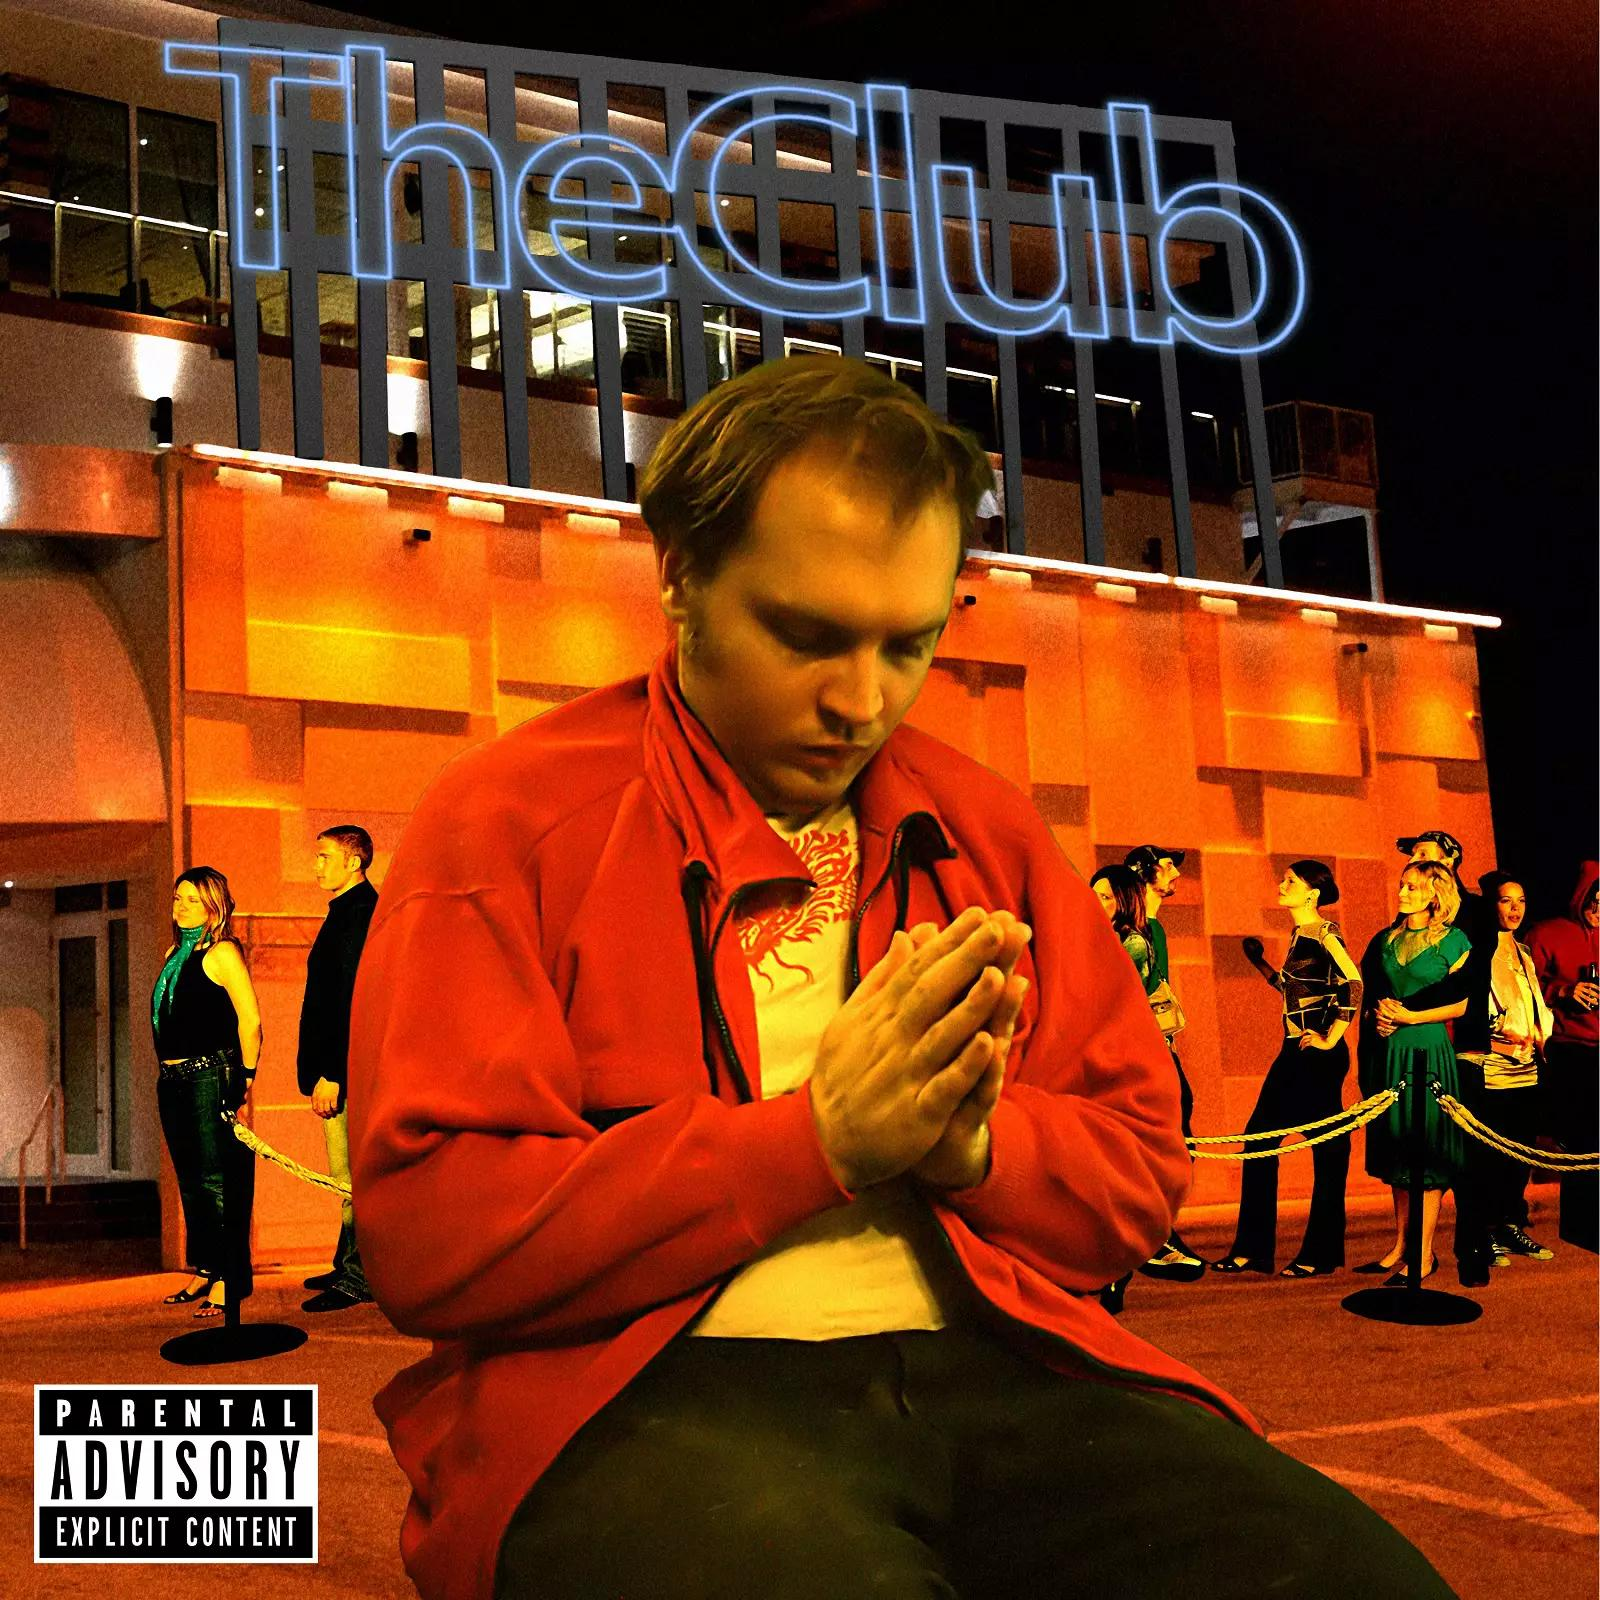 theclubcover